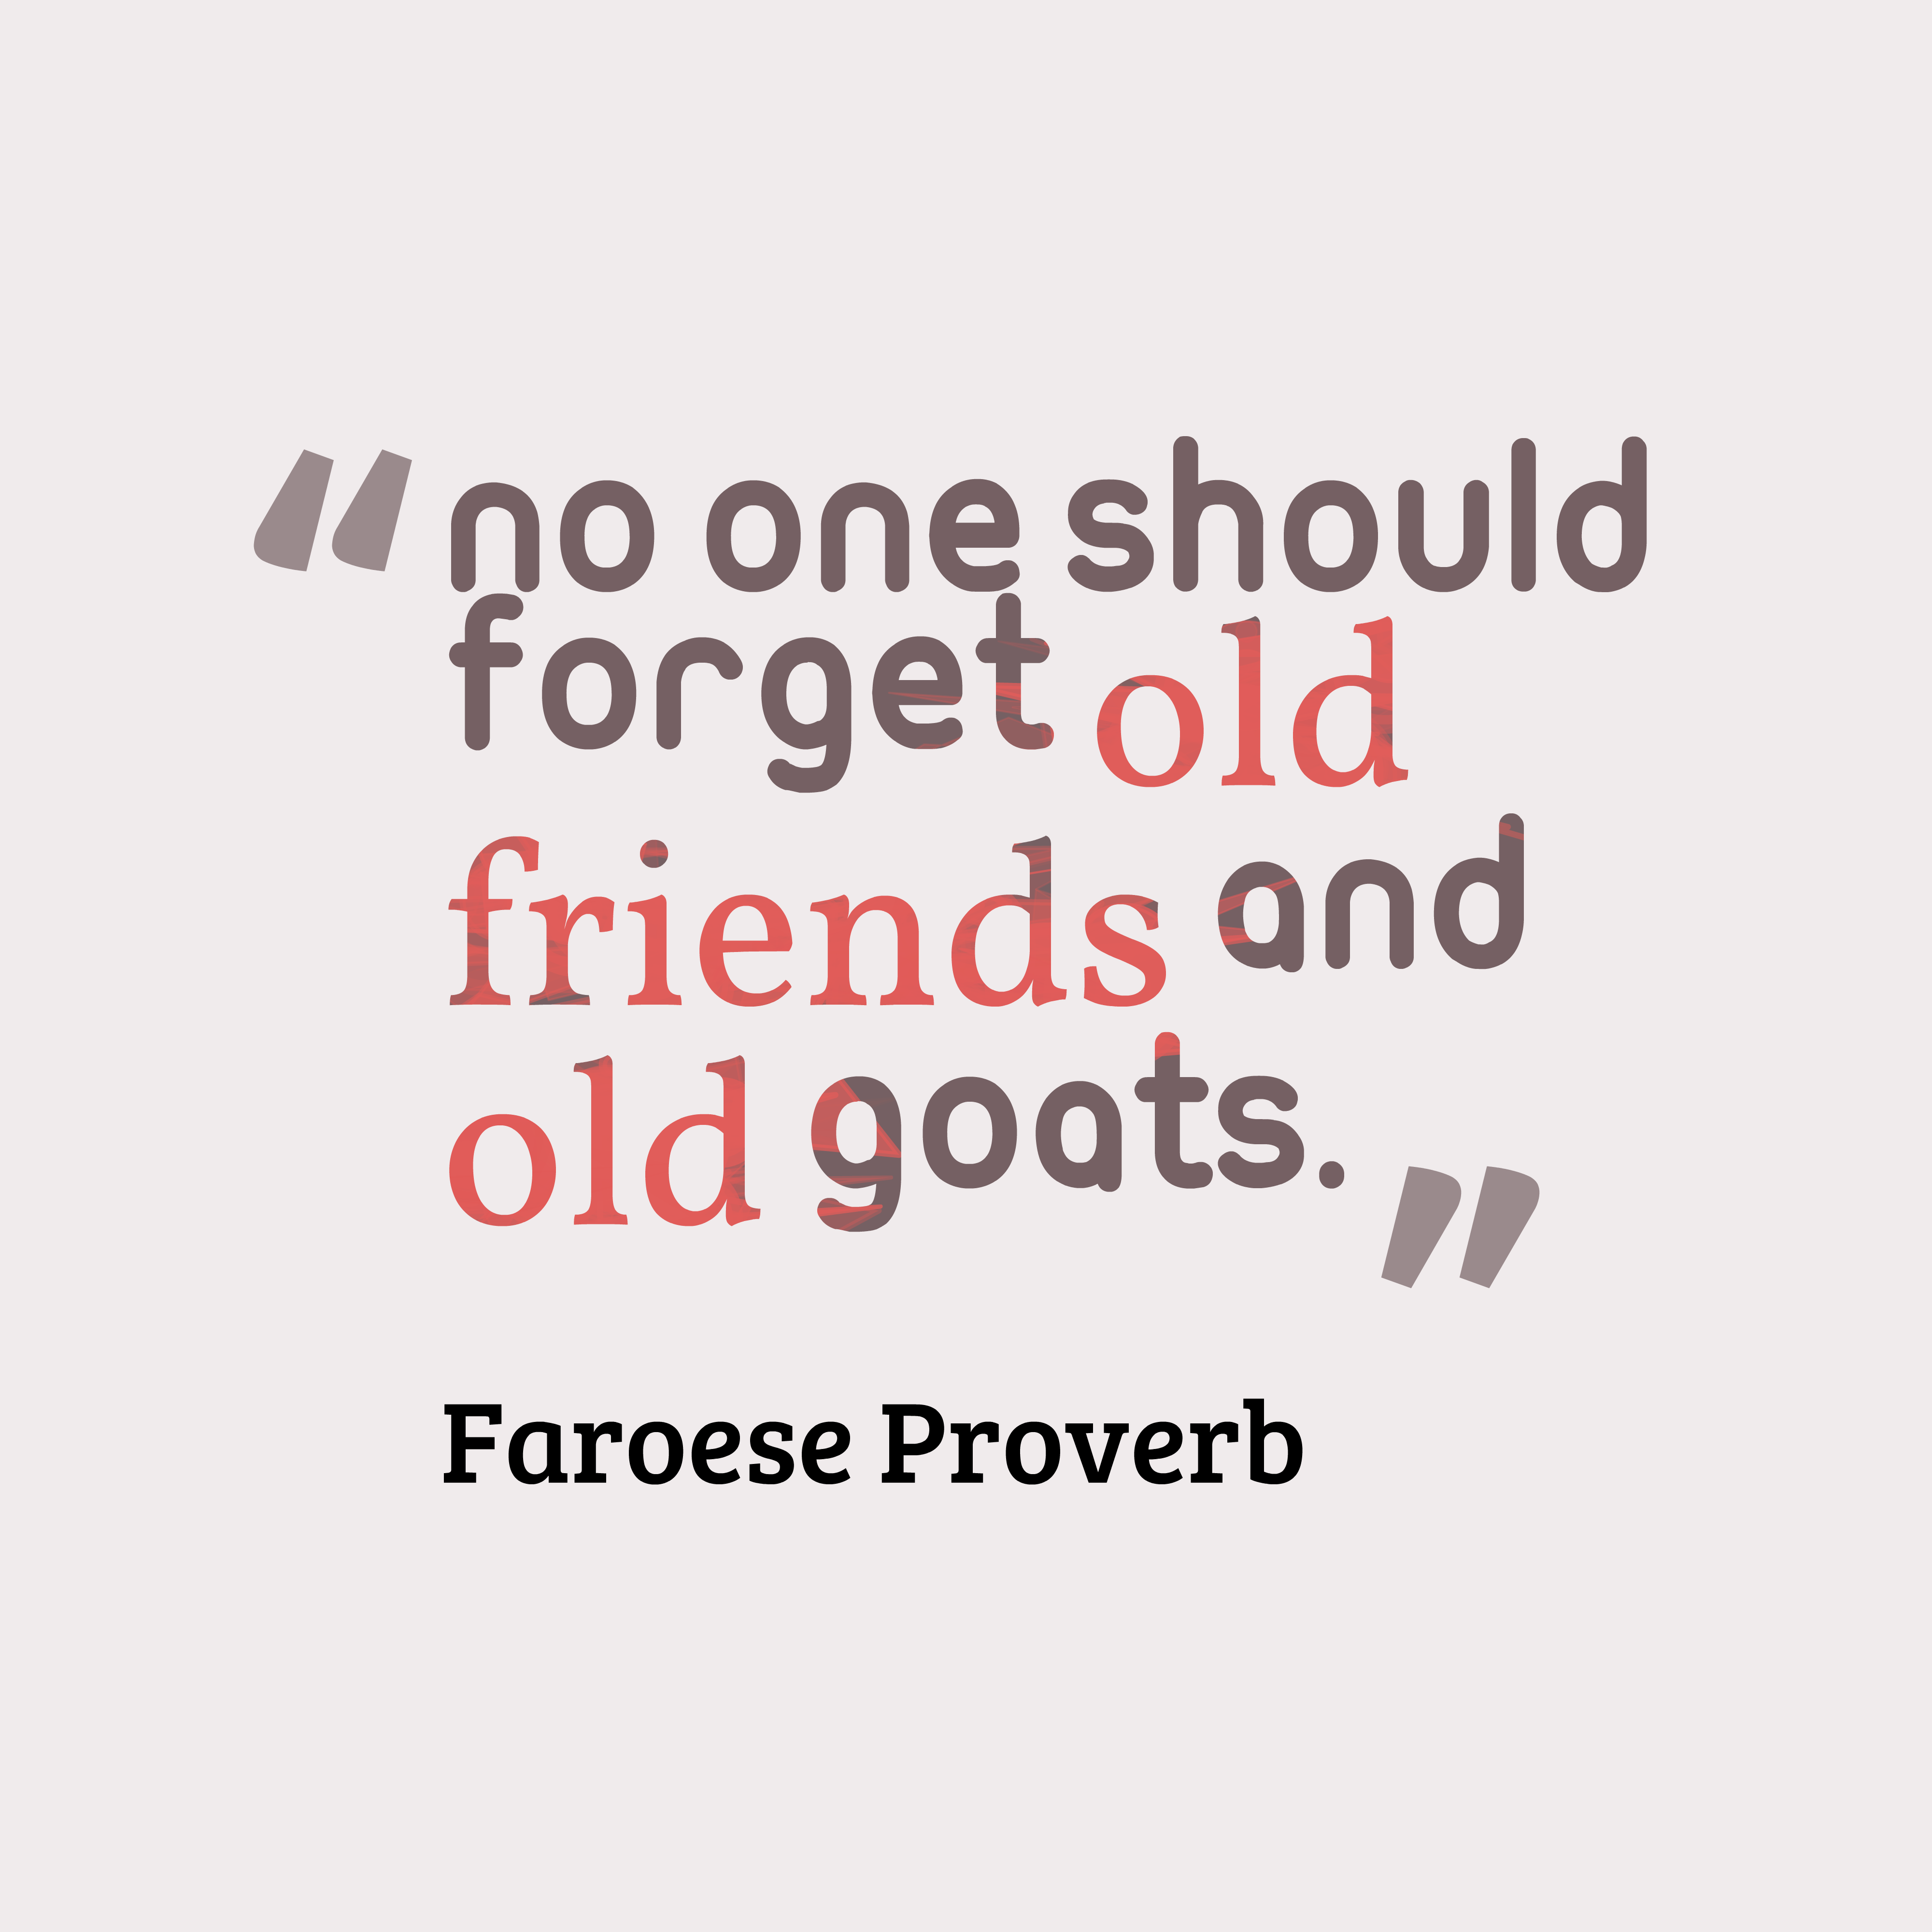 Faroese proverb about friendship